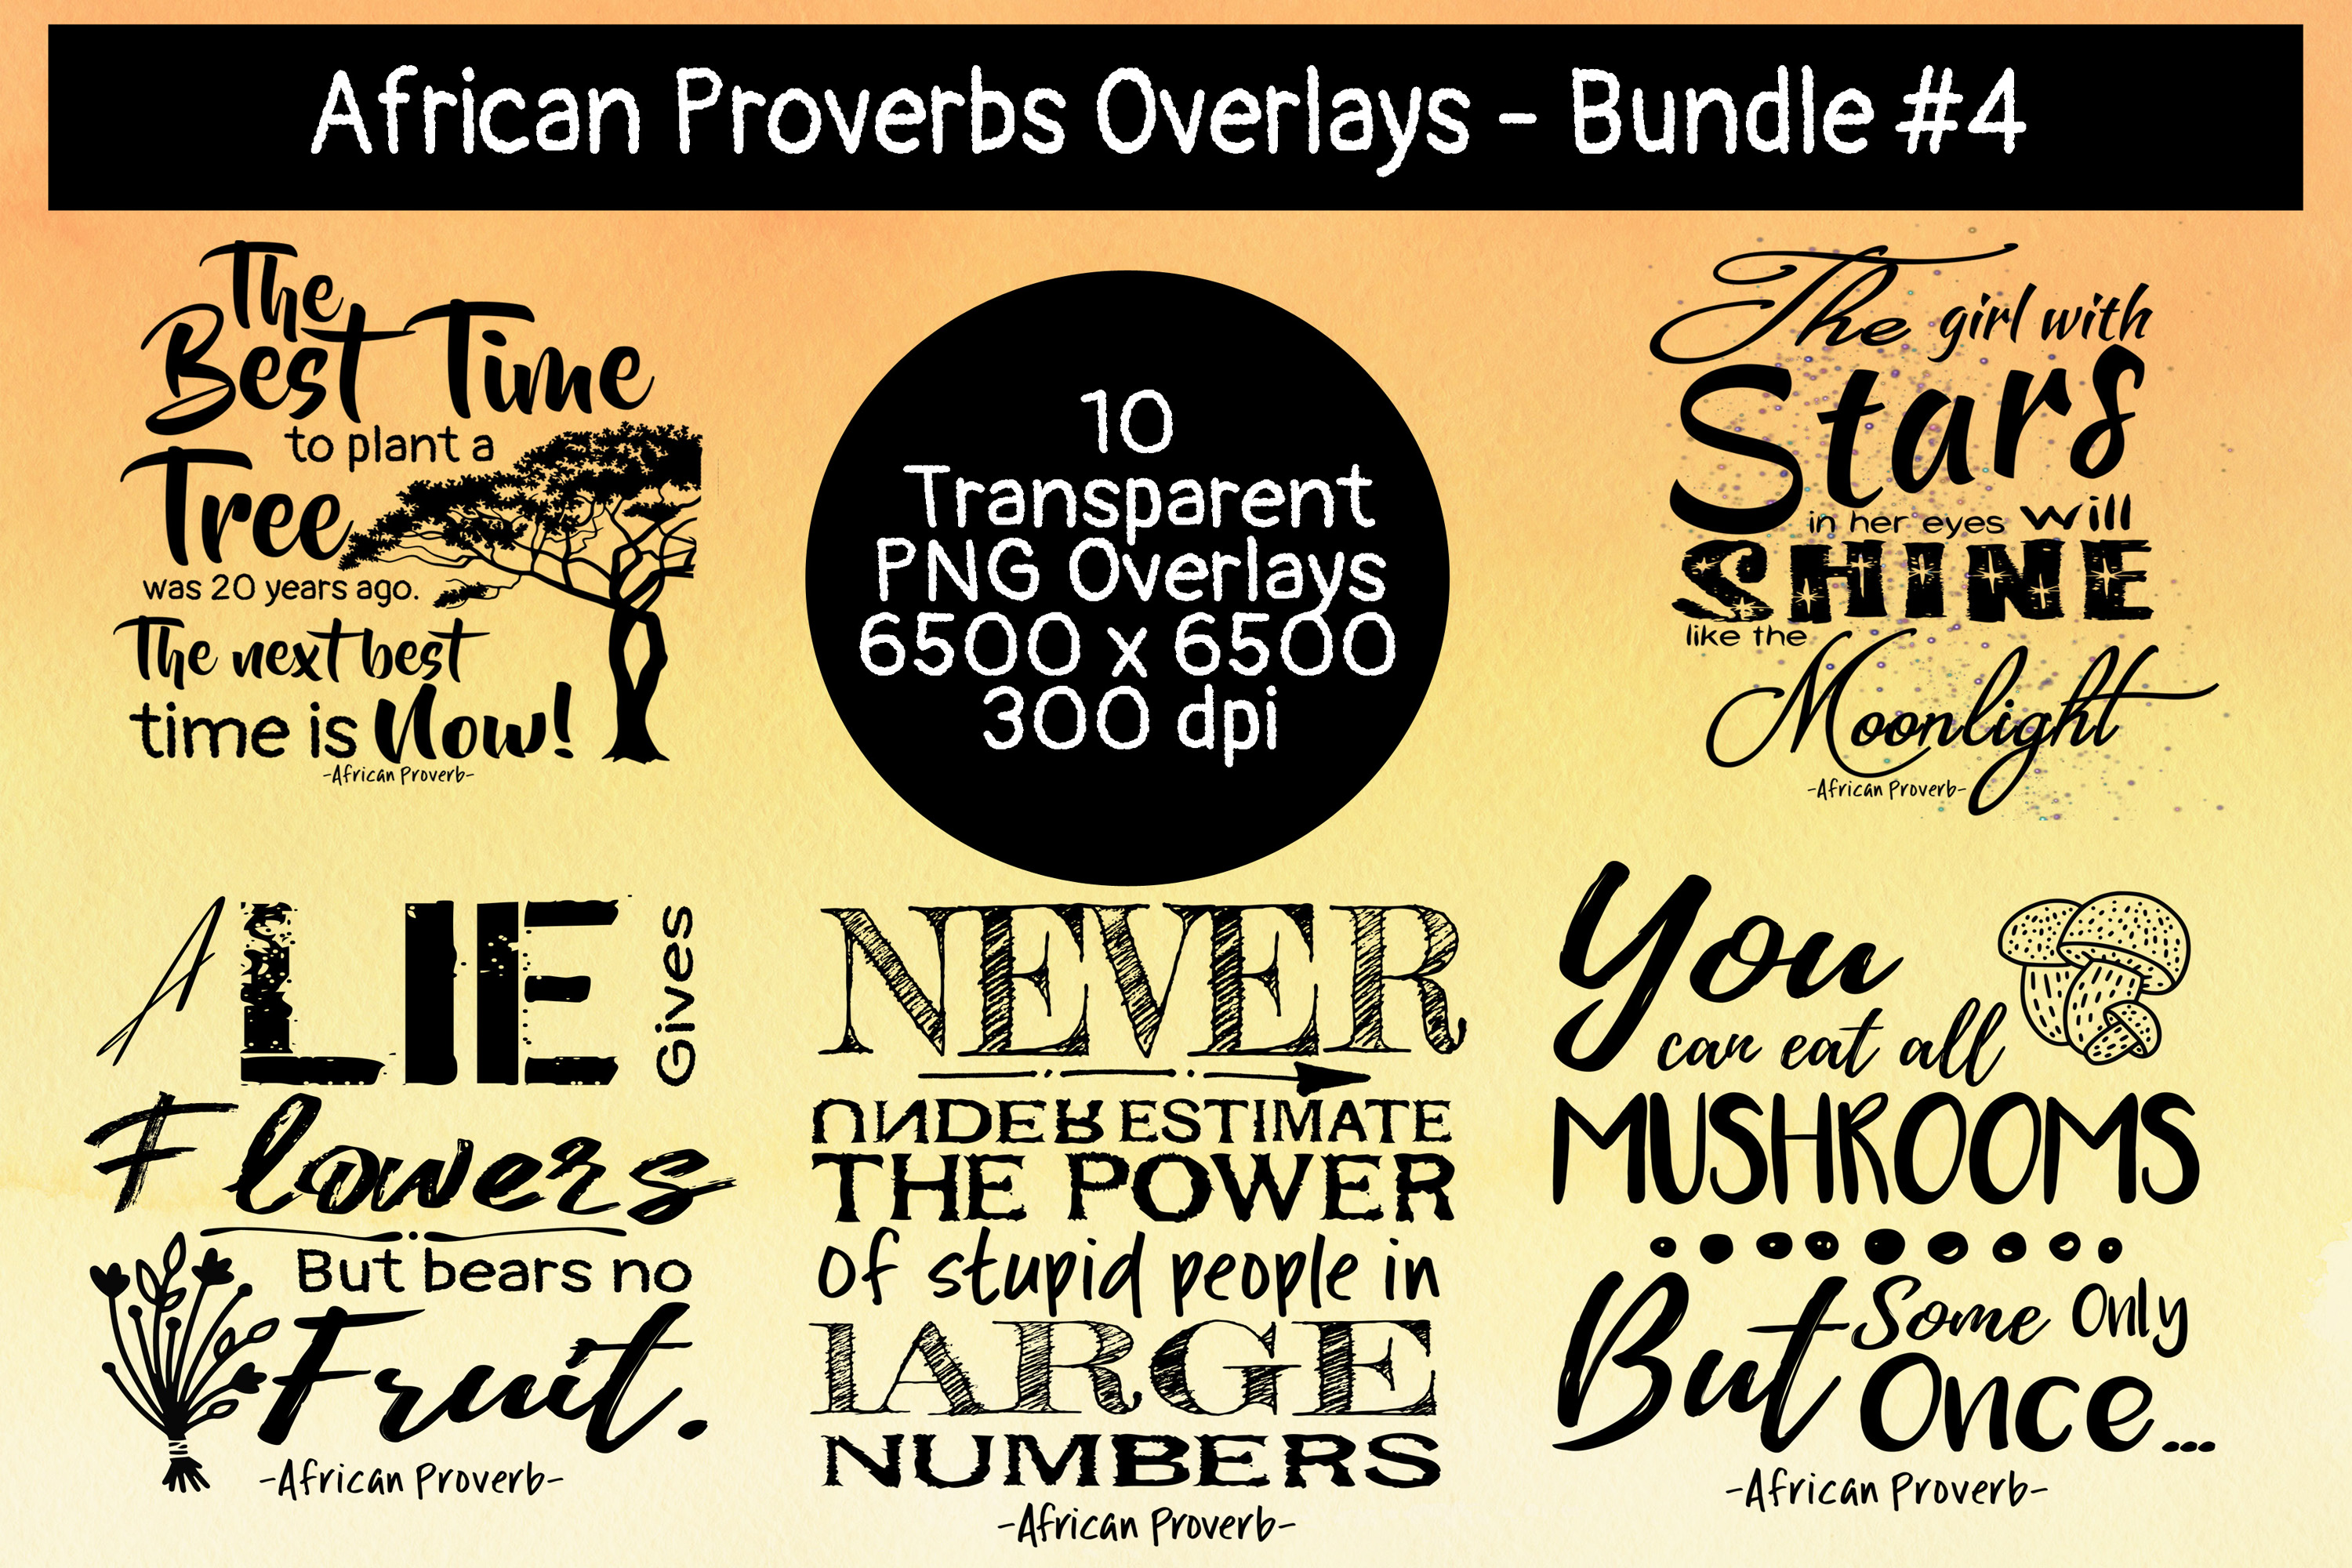 African Proverbs Overlays Bundle #4 example image 2